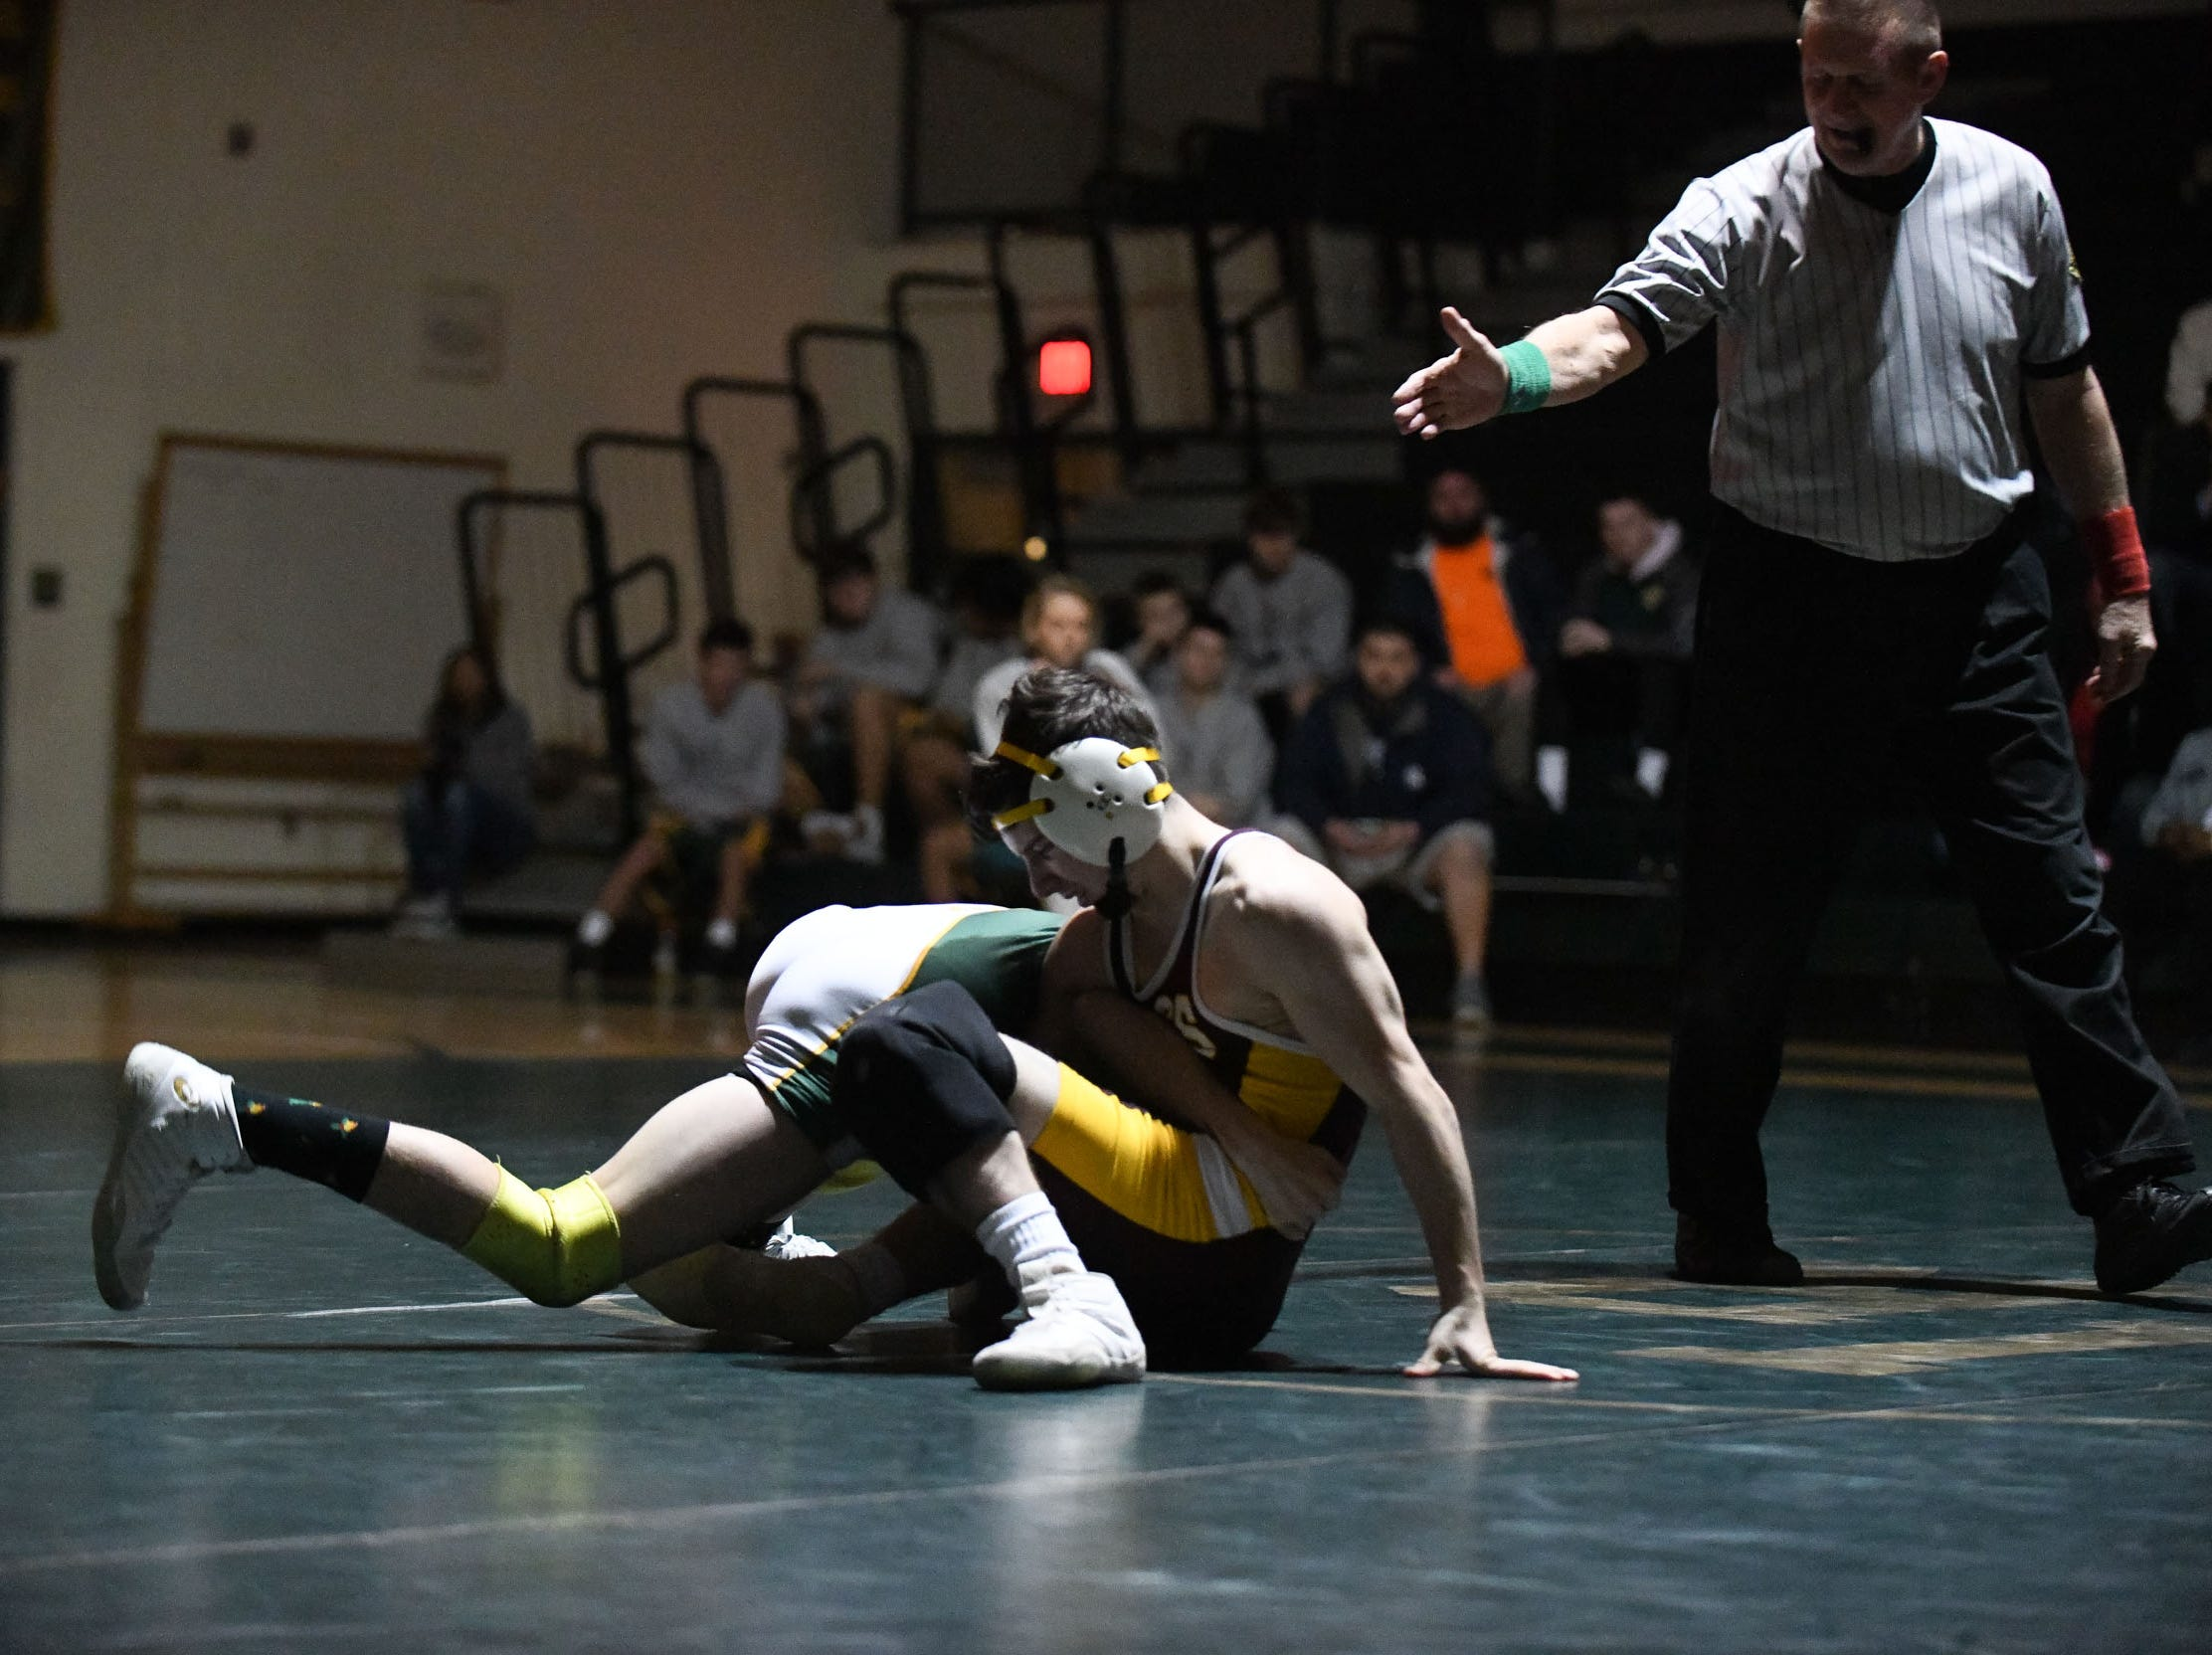 Indian River's Ian Shaubach battled Milford's Jack Thode during the 113lb match on Thursday, Jan 17, 2019 in Dagsboro, Del. Milford won the match 53-15.